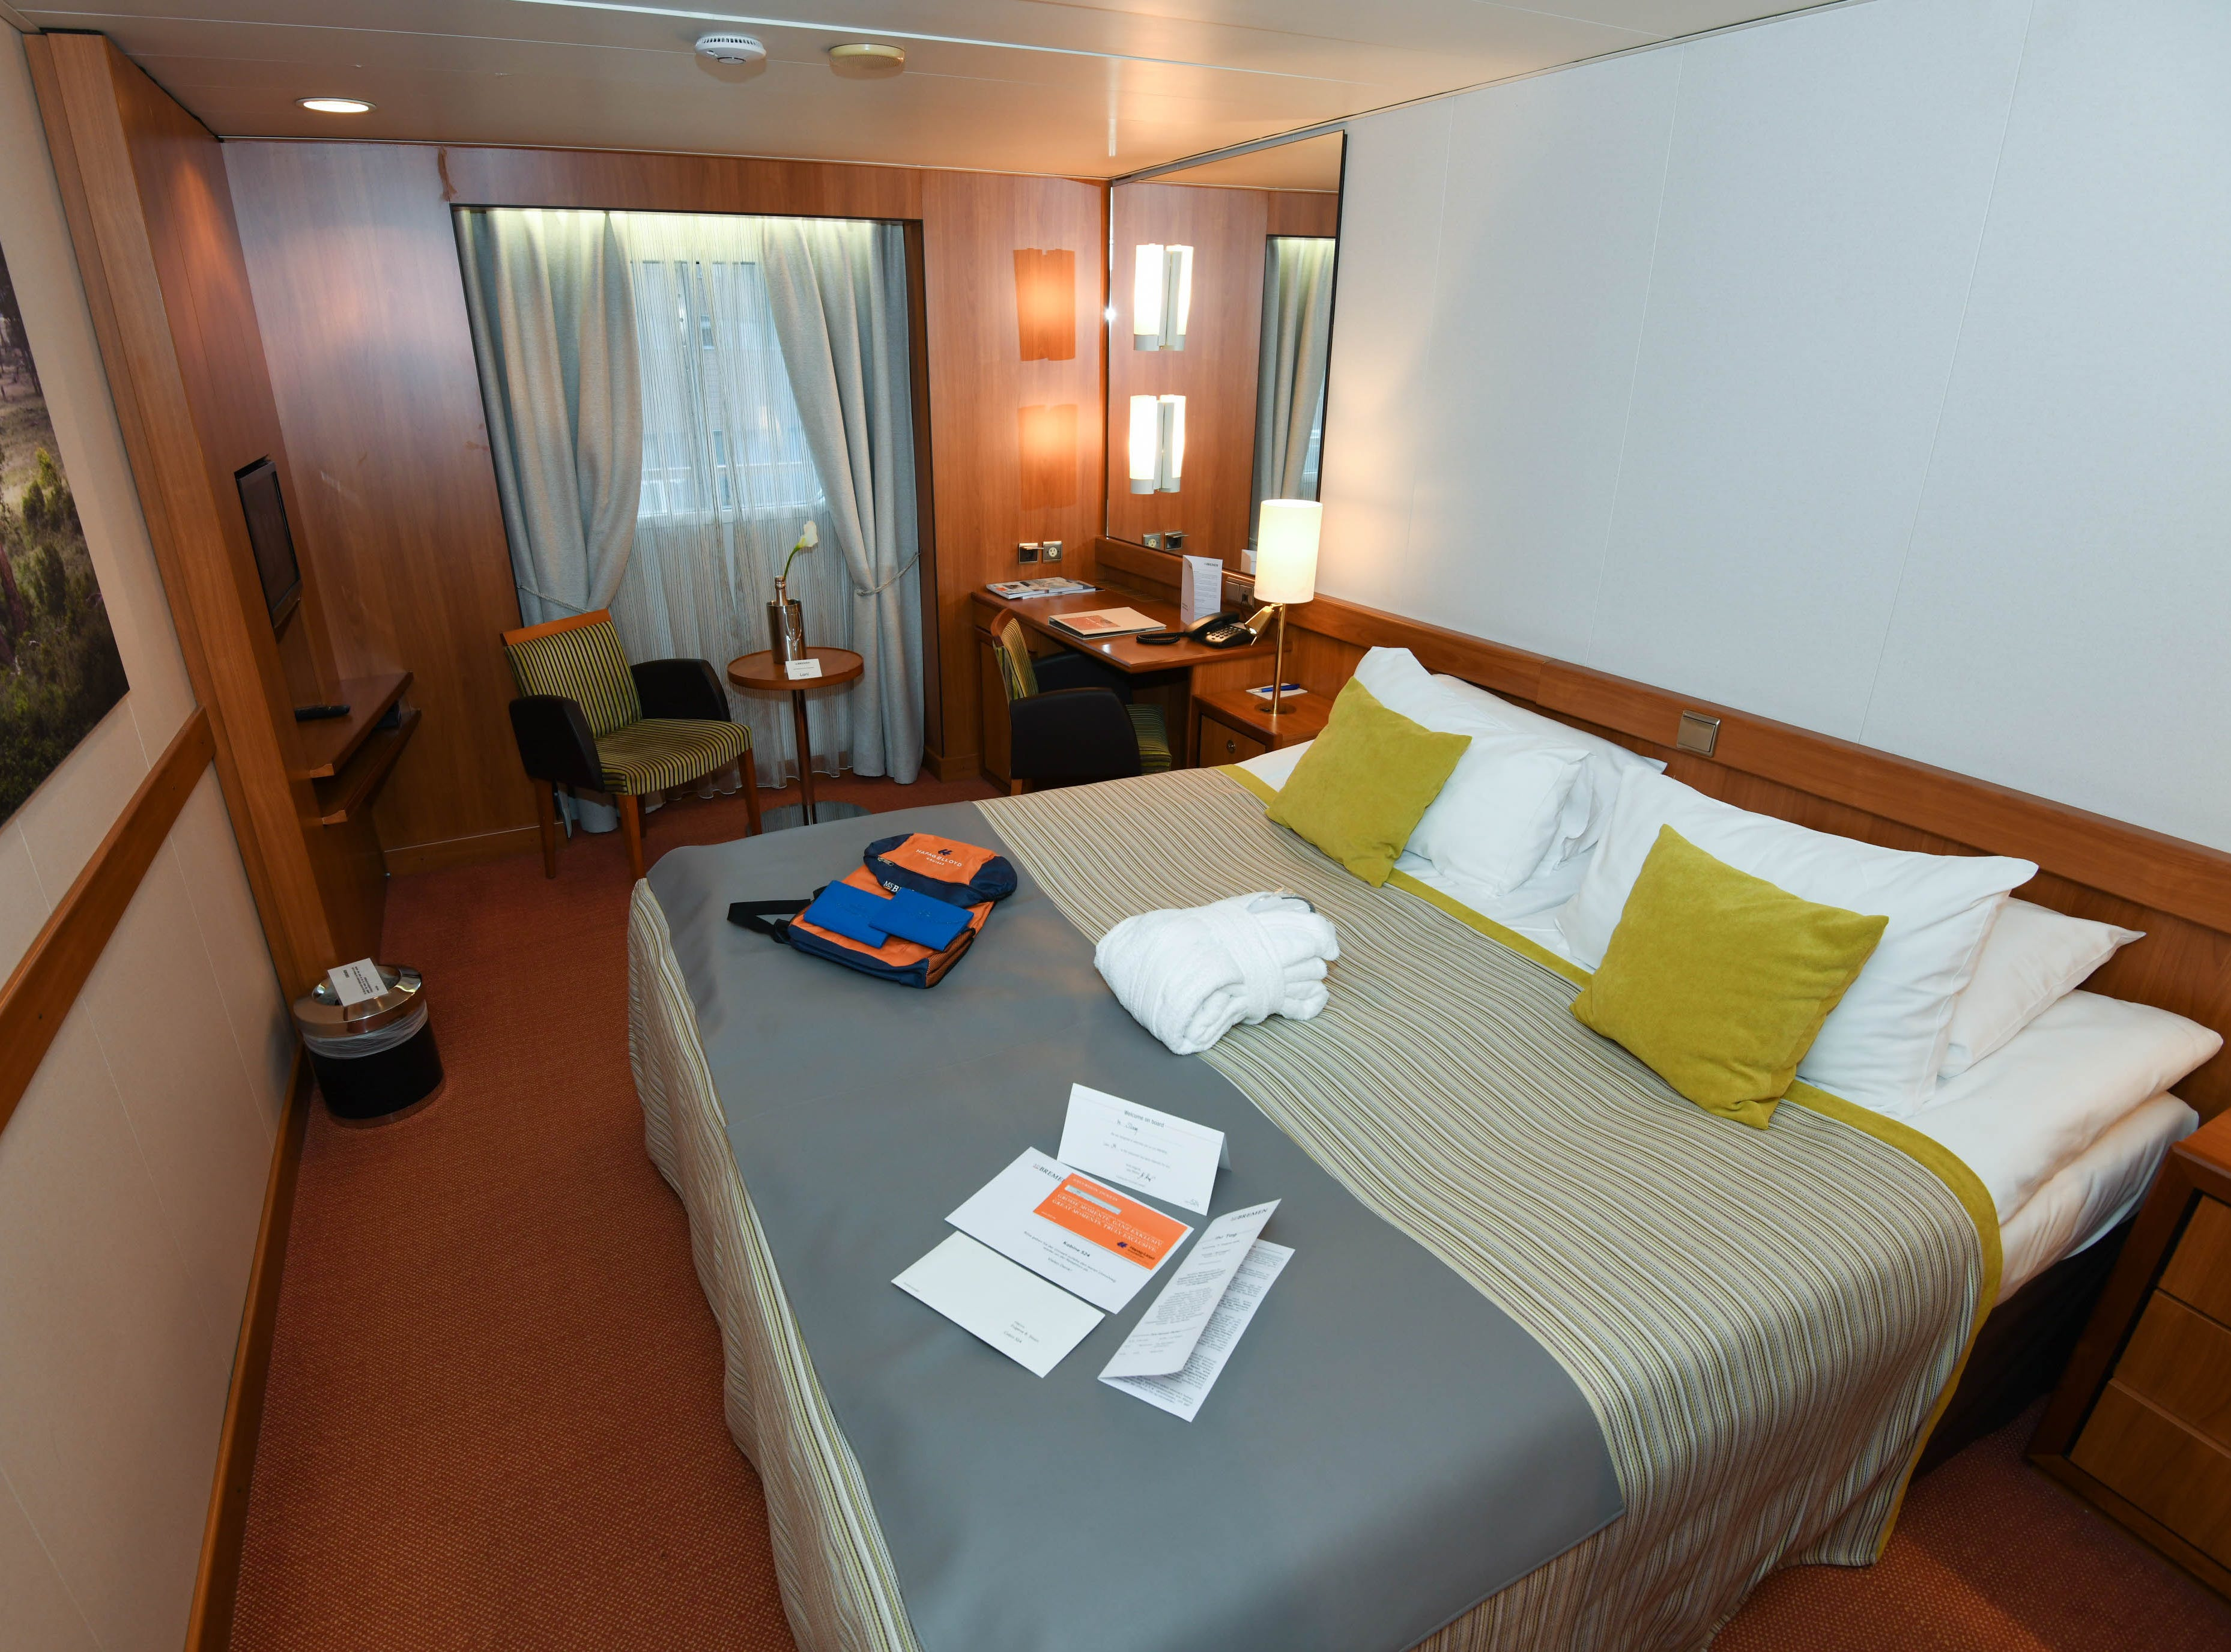 Bremen offers 82 cabins, all of which have ocean views. The cabins are spread over parts of five of Bremen's eight passenger decks.